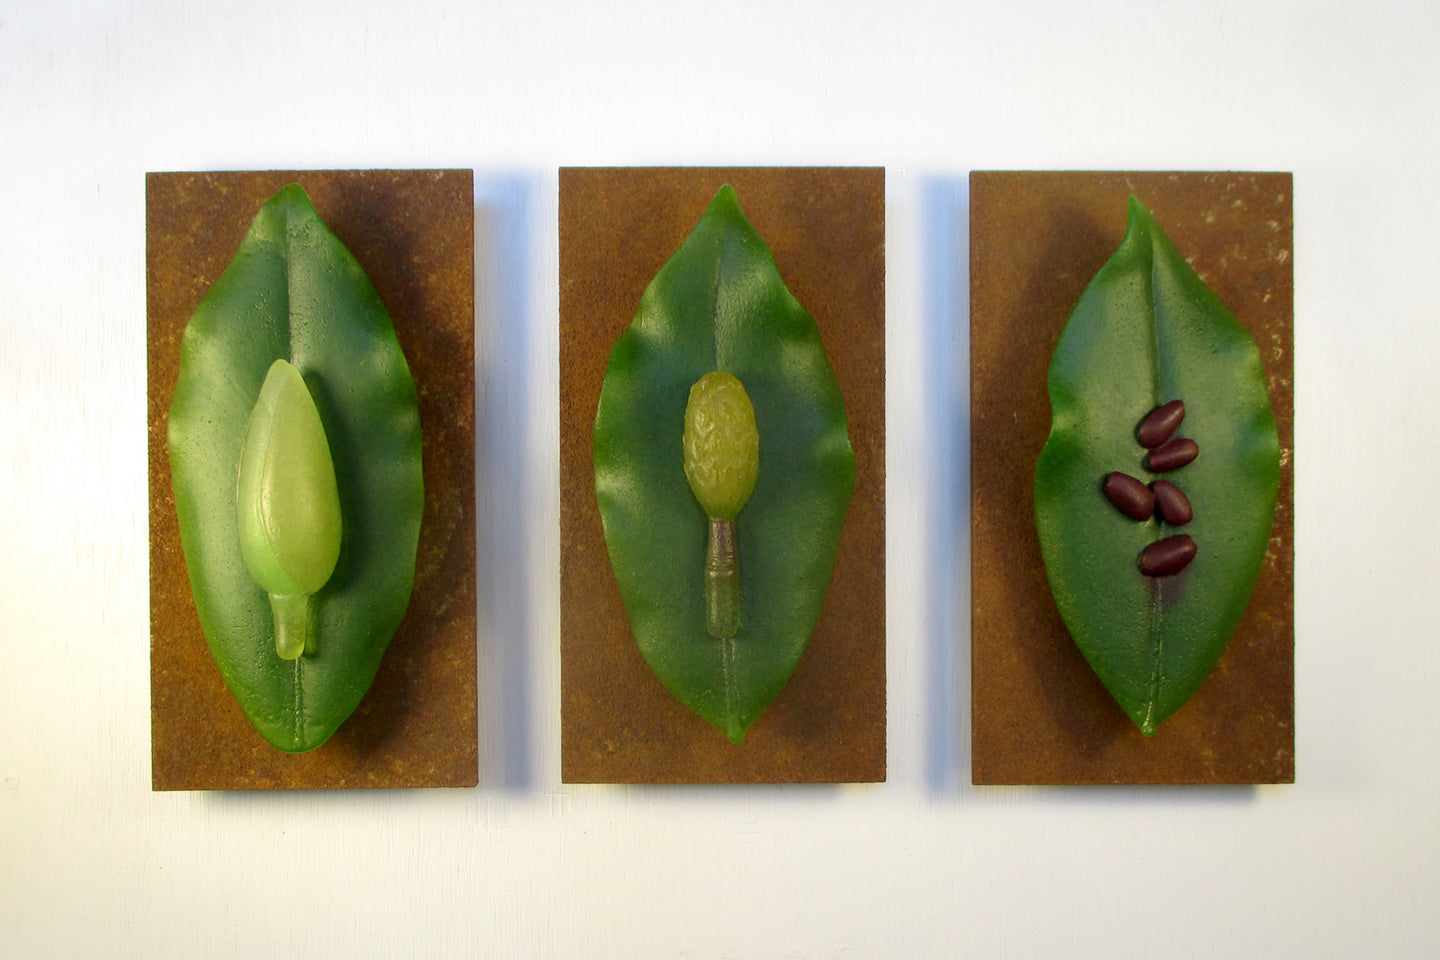 Particles-Ellen Abbott: Magnolia Leaves with Flower Bud, Nascent Seed Pod, and Seeds